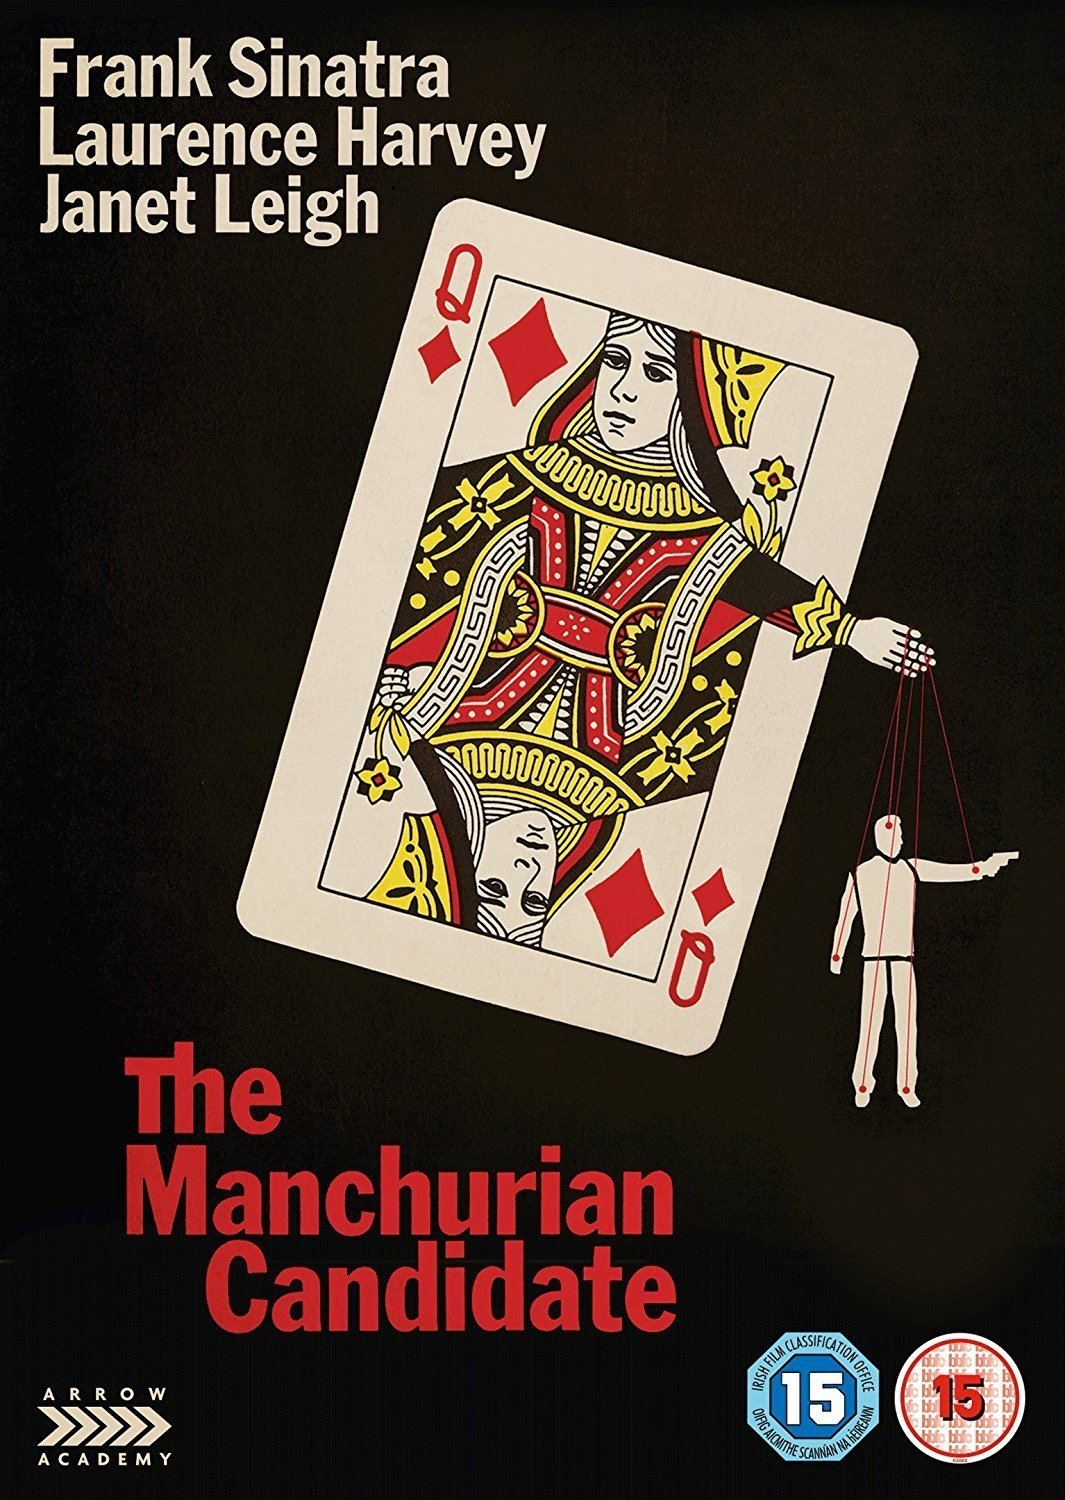 Buy Manchurian Candidate, The